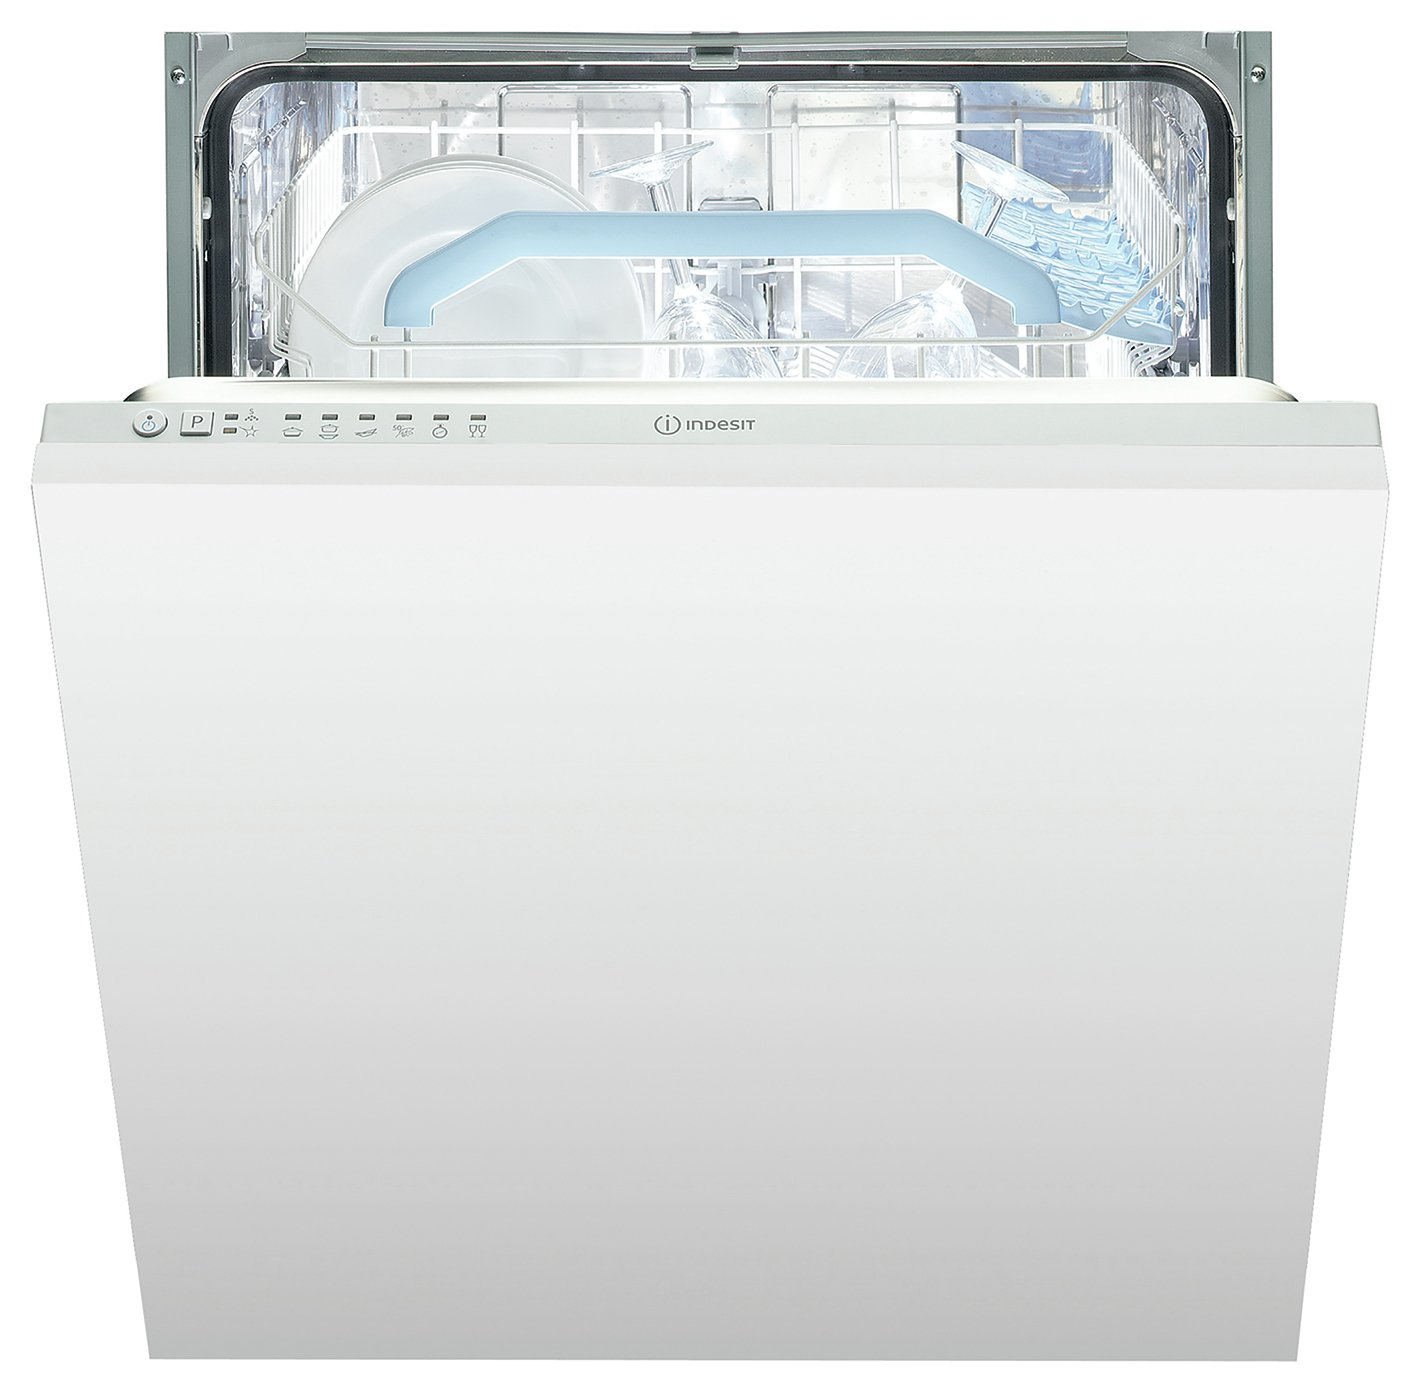 Image of Indesit - DIF16B1 Dishwasher - White